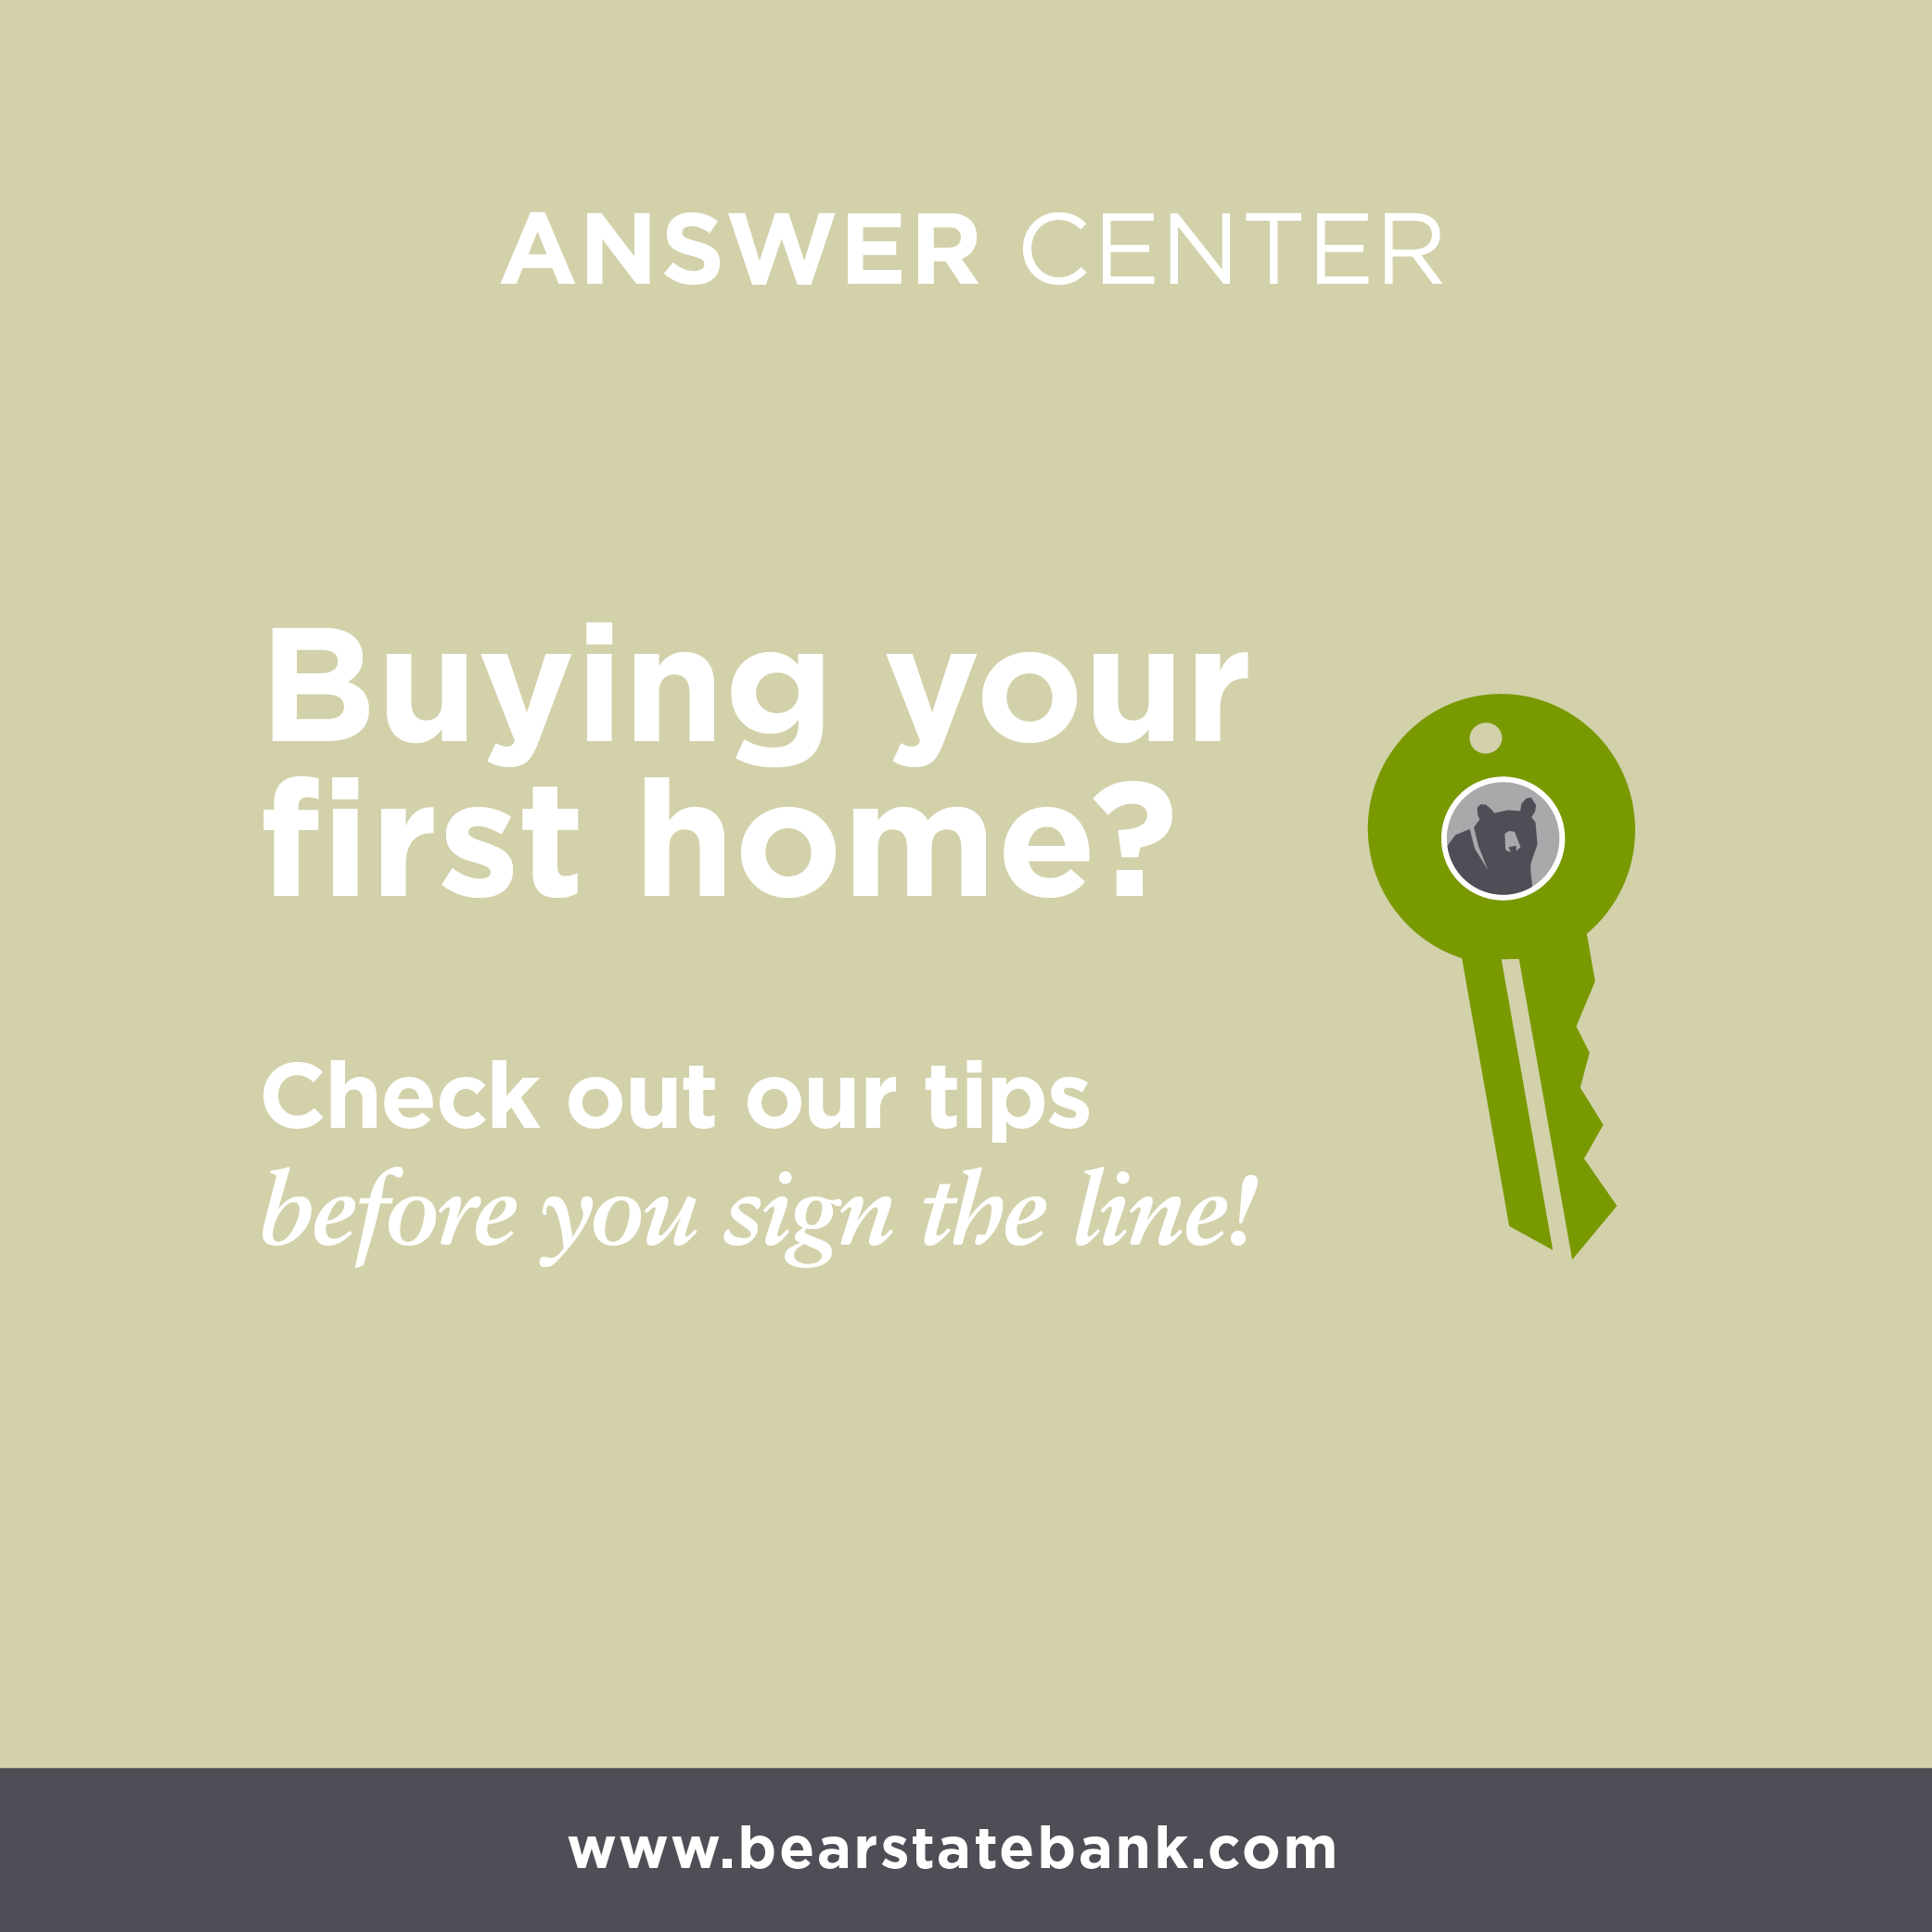 Buying your first home? Check out our tips before you sign the line